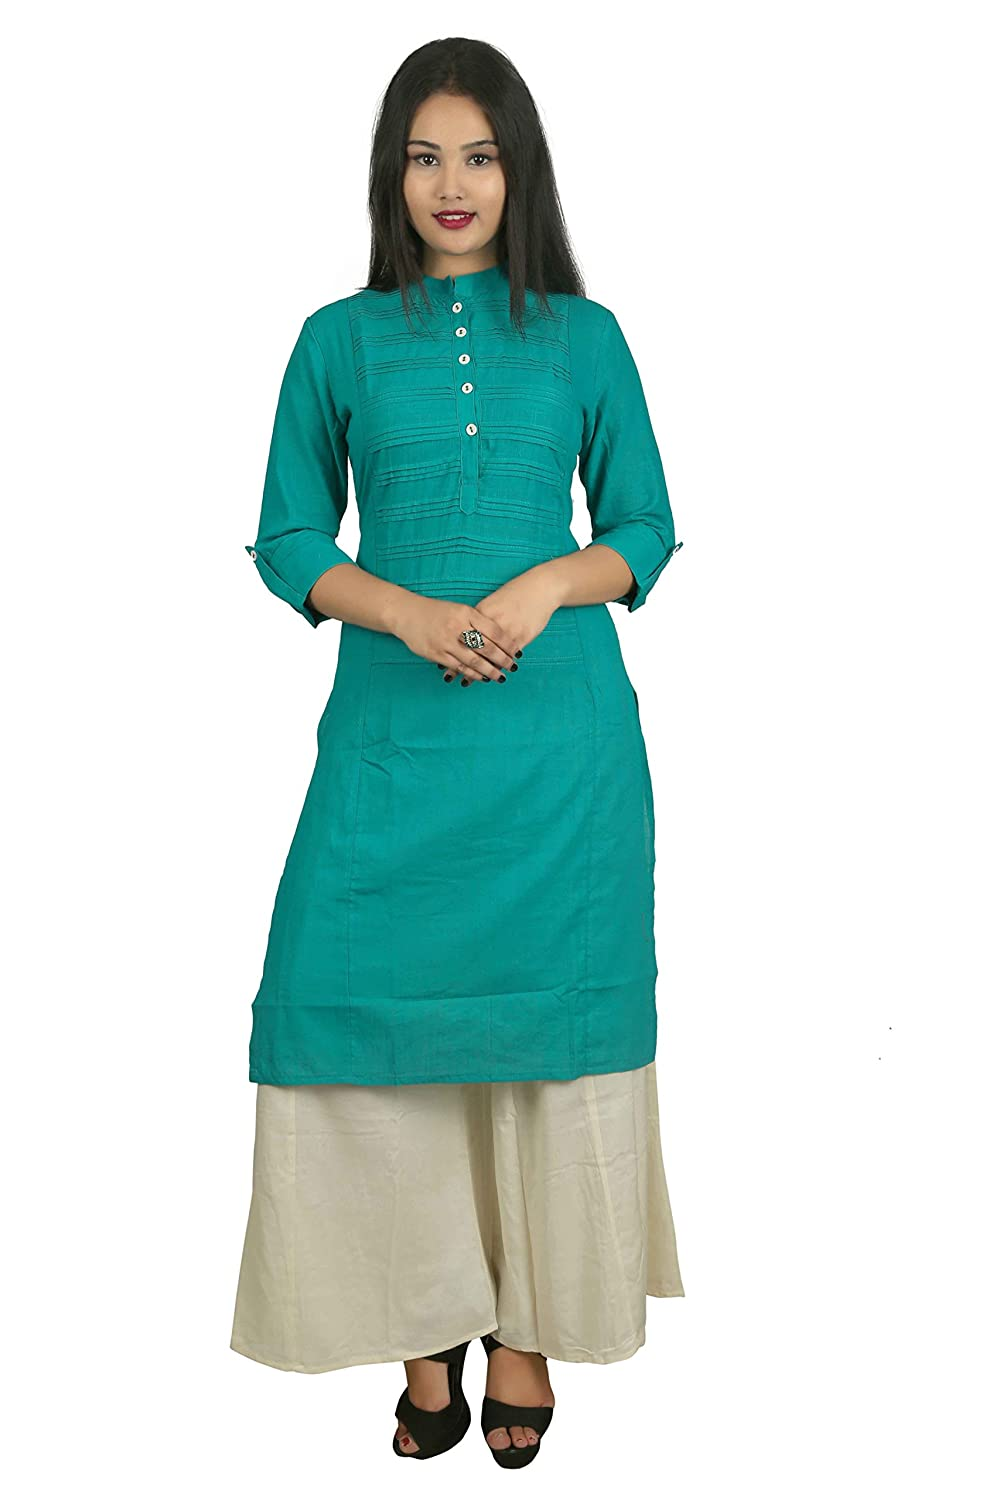 Green Solid 3/4 Sleeve Cotton Women's Kurta and Palazzo Set Indian Handicrfats Export D15-Troquise-Beige-L